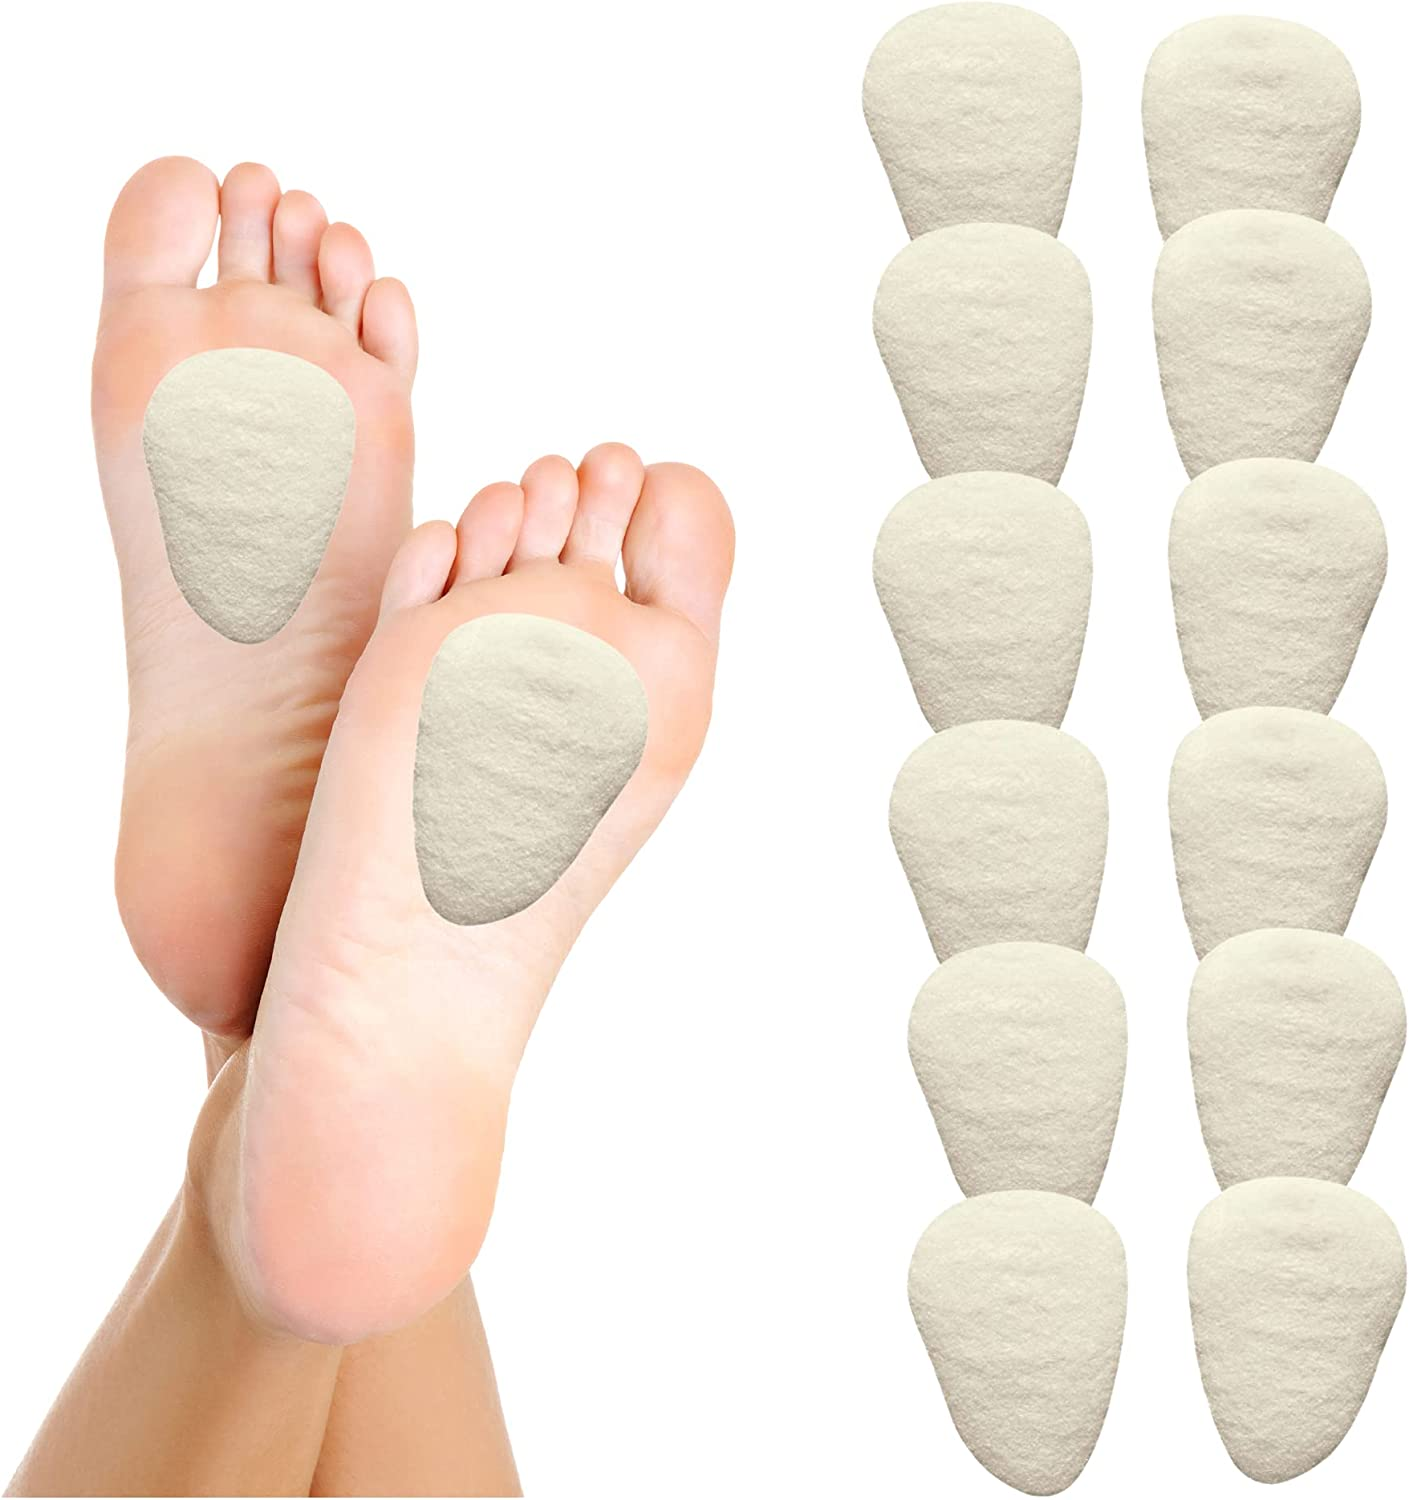 Hapad Metatarsal Pads - Foot Cushion Max 52% OFF All items free shipping Relief Fo Pain